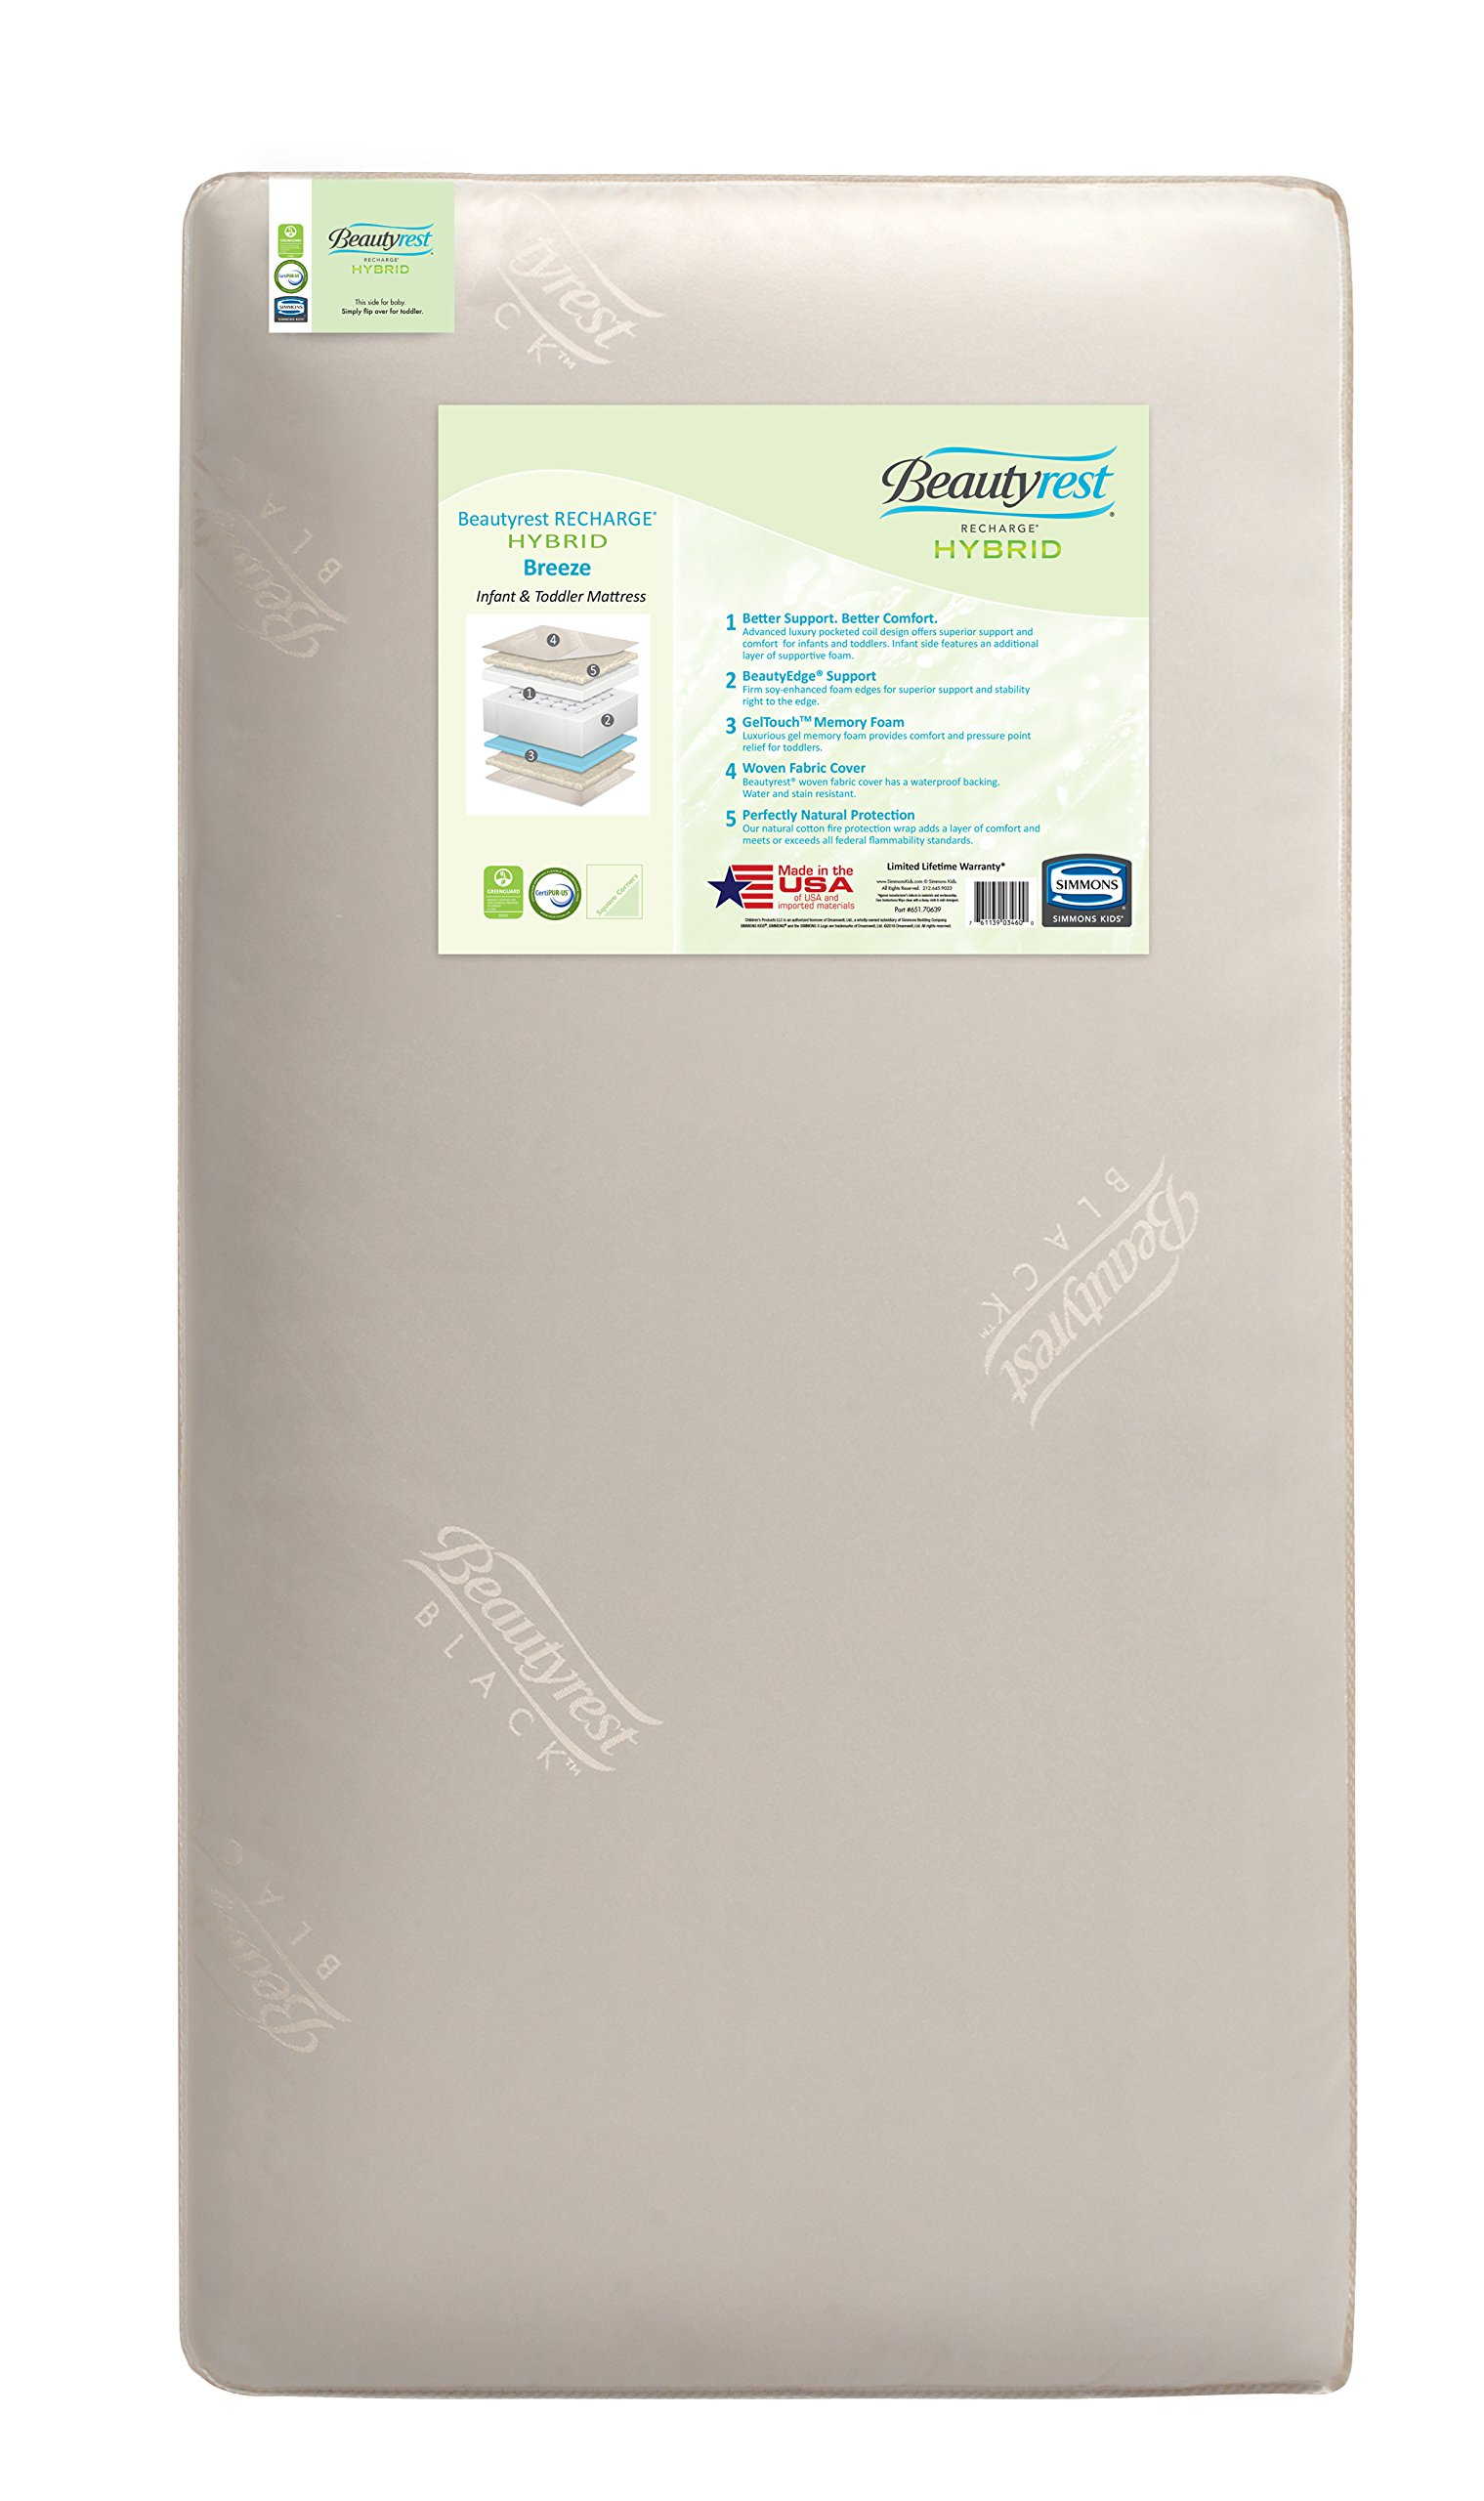 Simmons Kids Beautyrest Recharge Hybrid Breeze Crib and Toddler Mattress by Simmons Kids (Image #1)